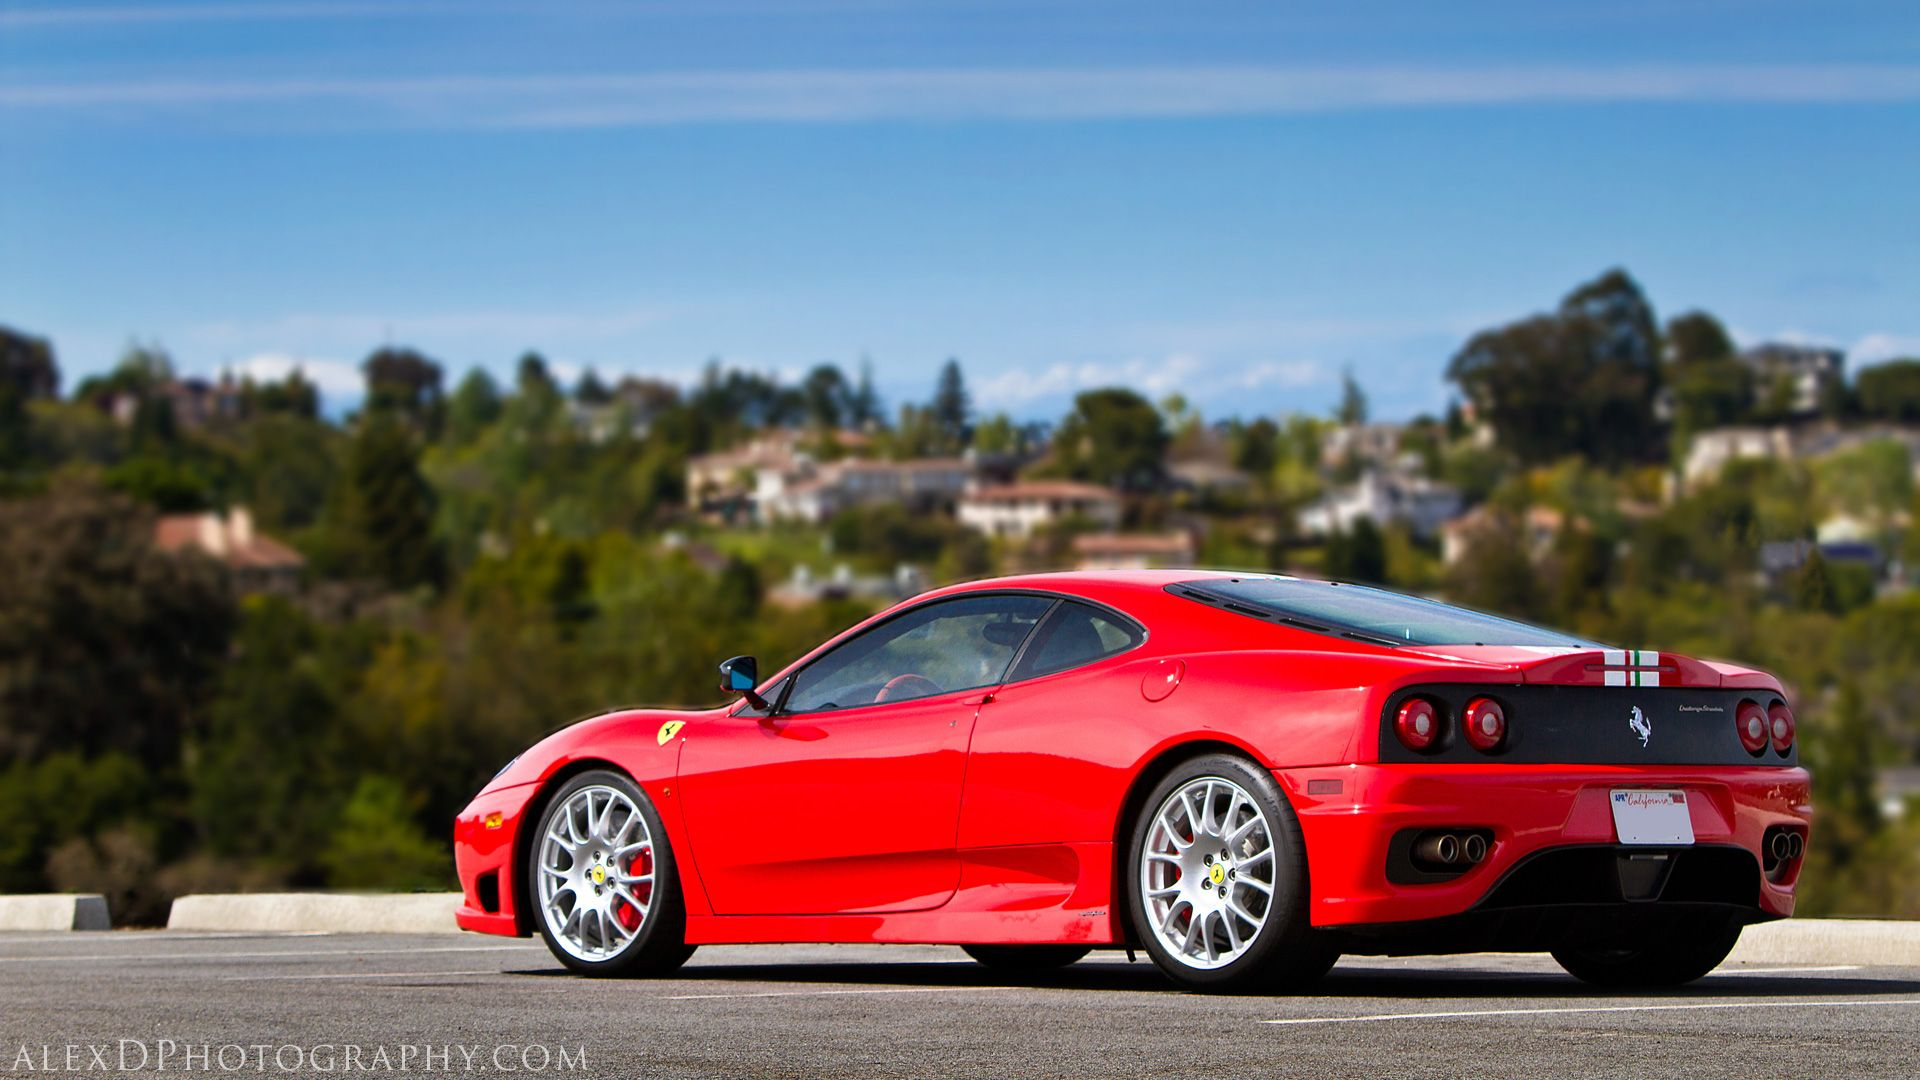 Ferrari 360 Challenge Picture That Really Fascinating To Inspire Your Cars  Ideas U2013 Urcar.